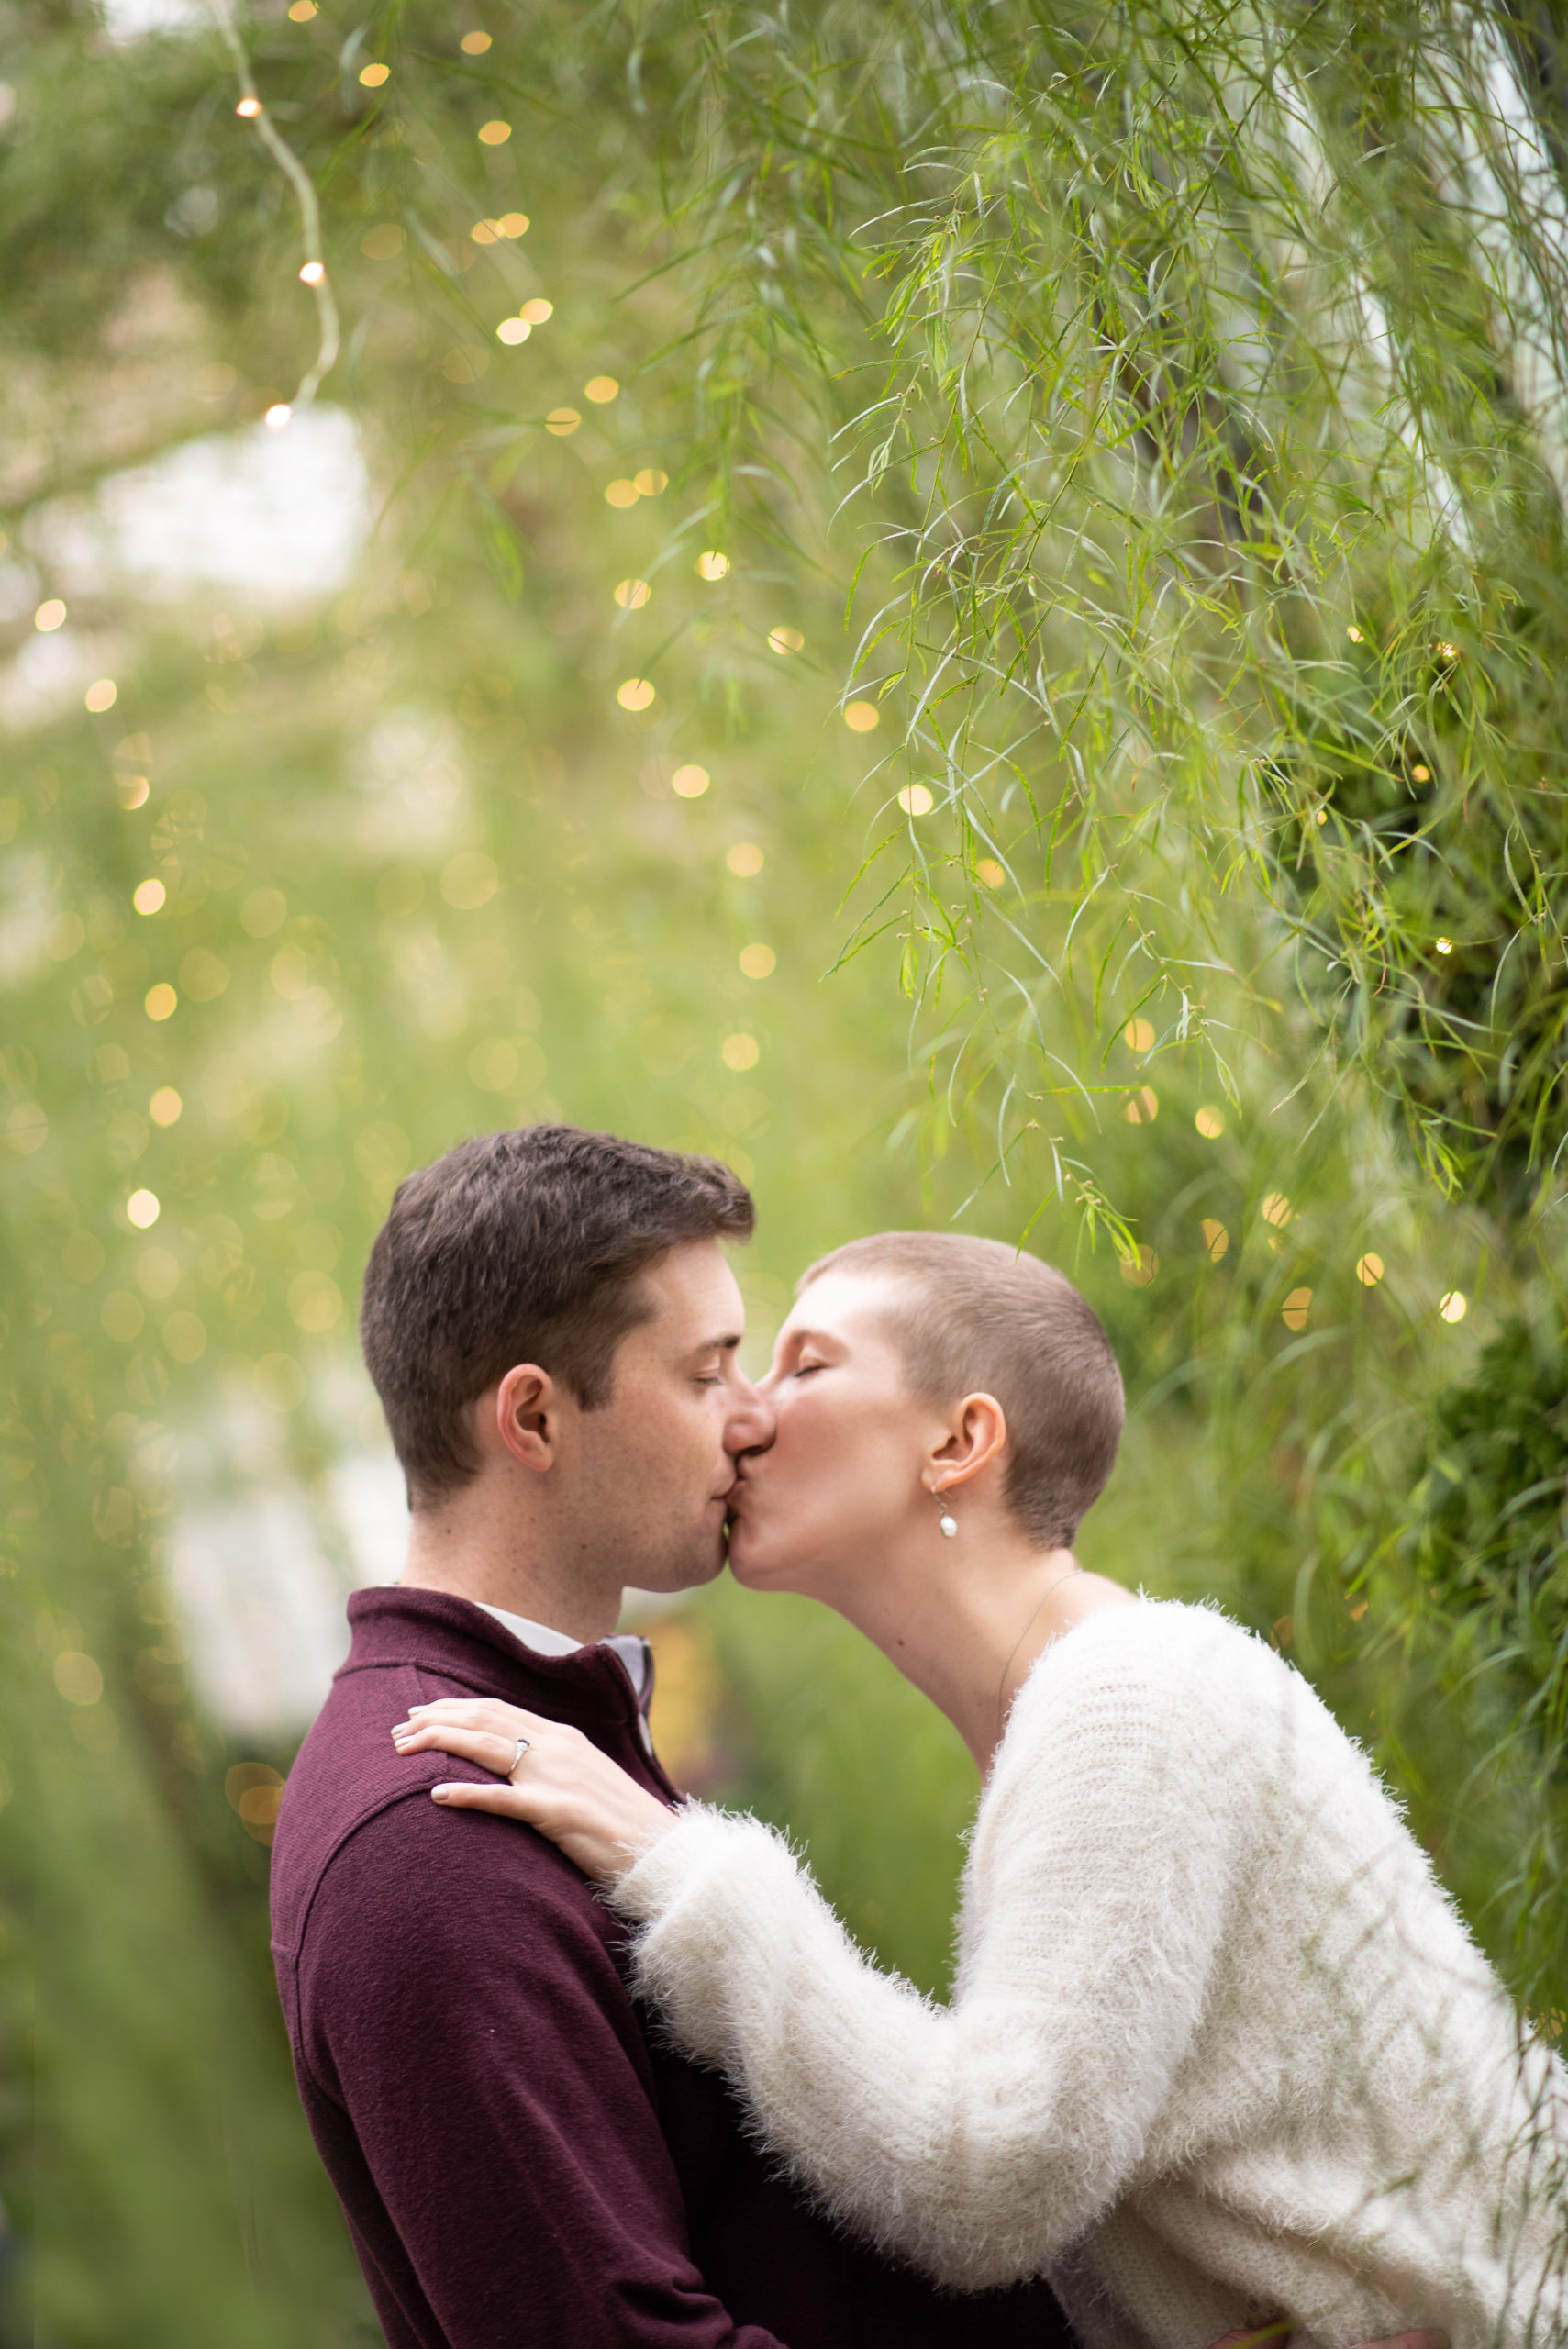 Kissing with beautiful green plants hanging behind